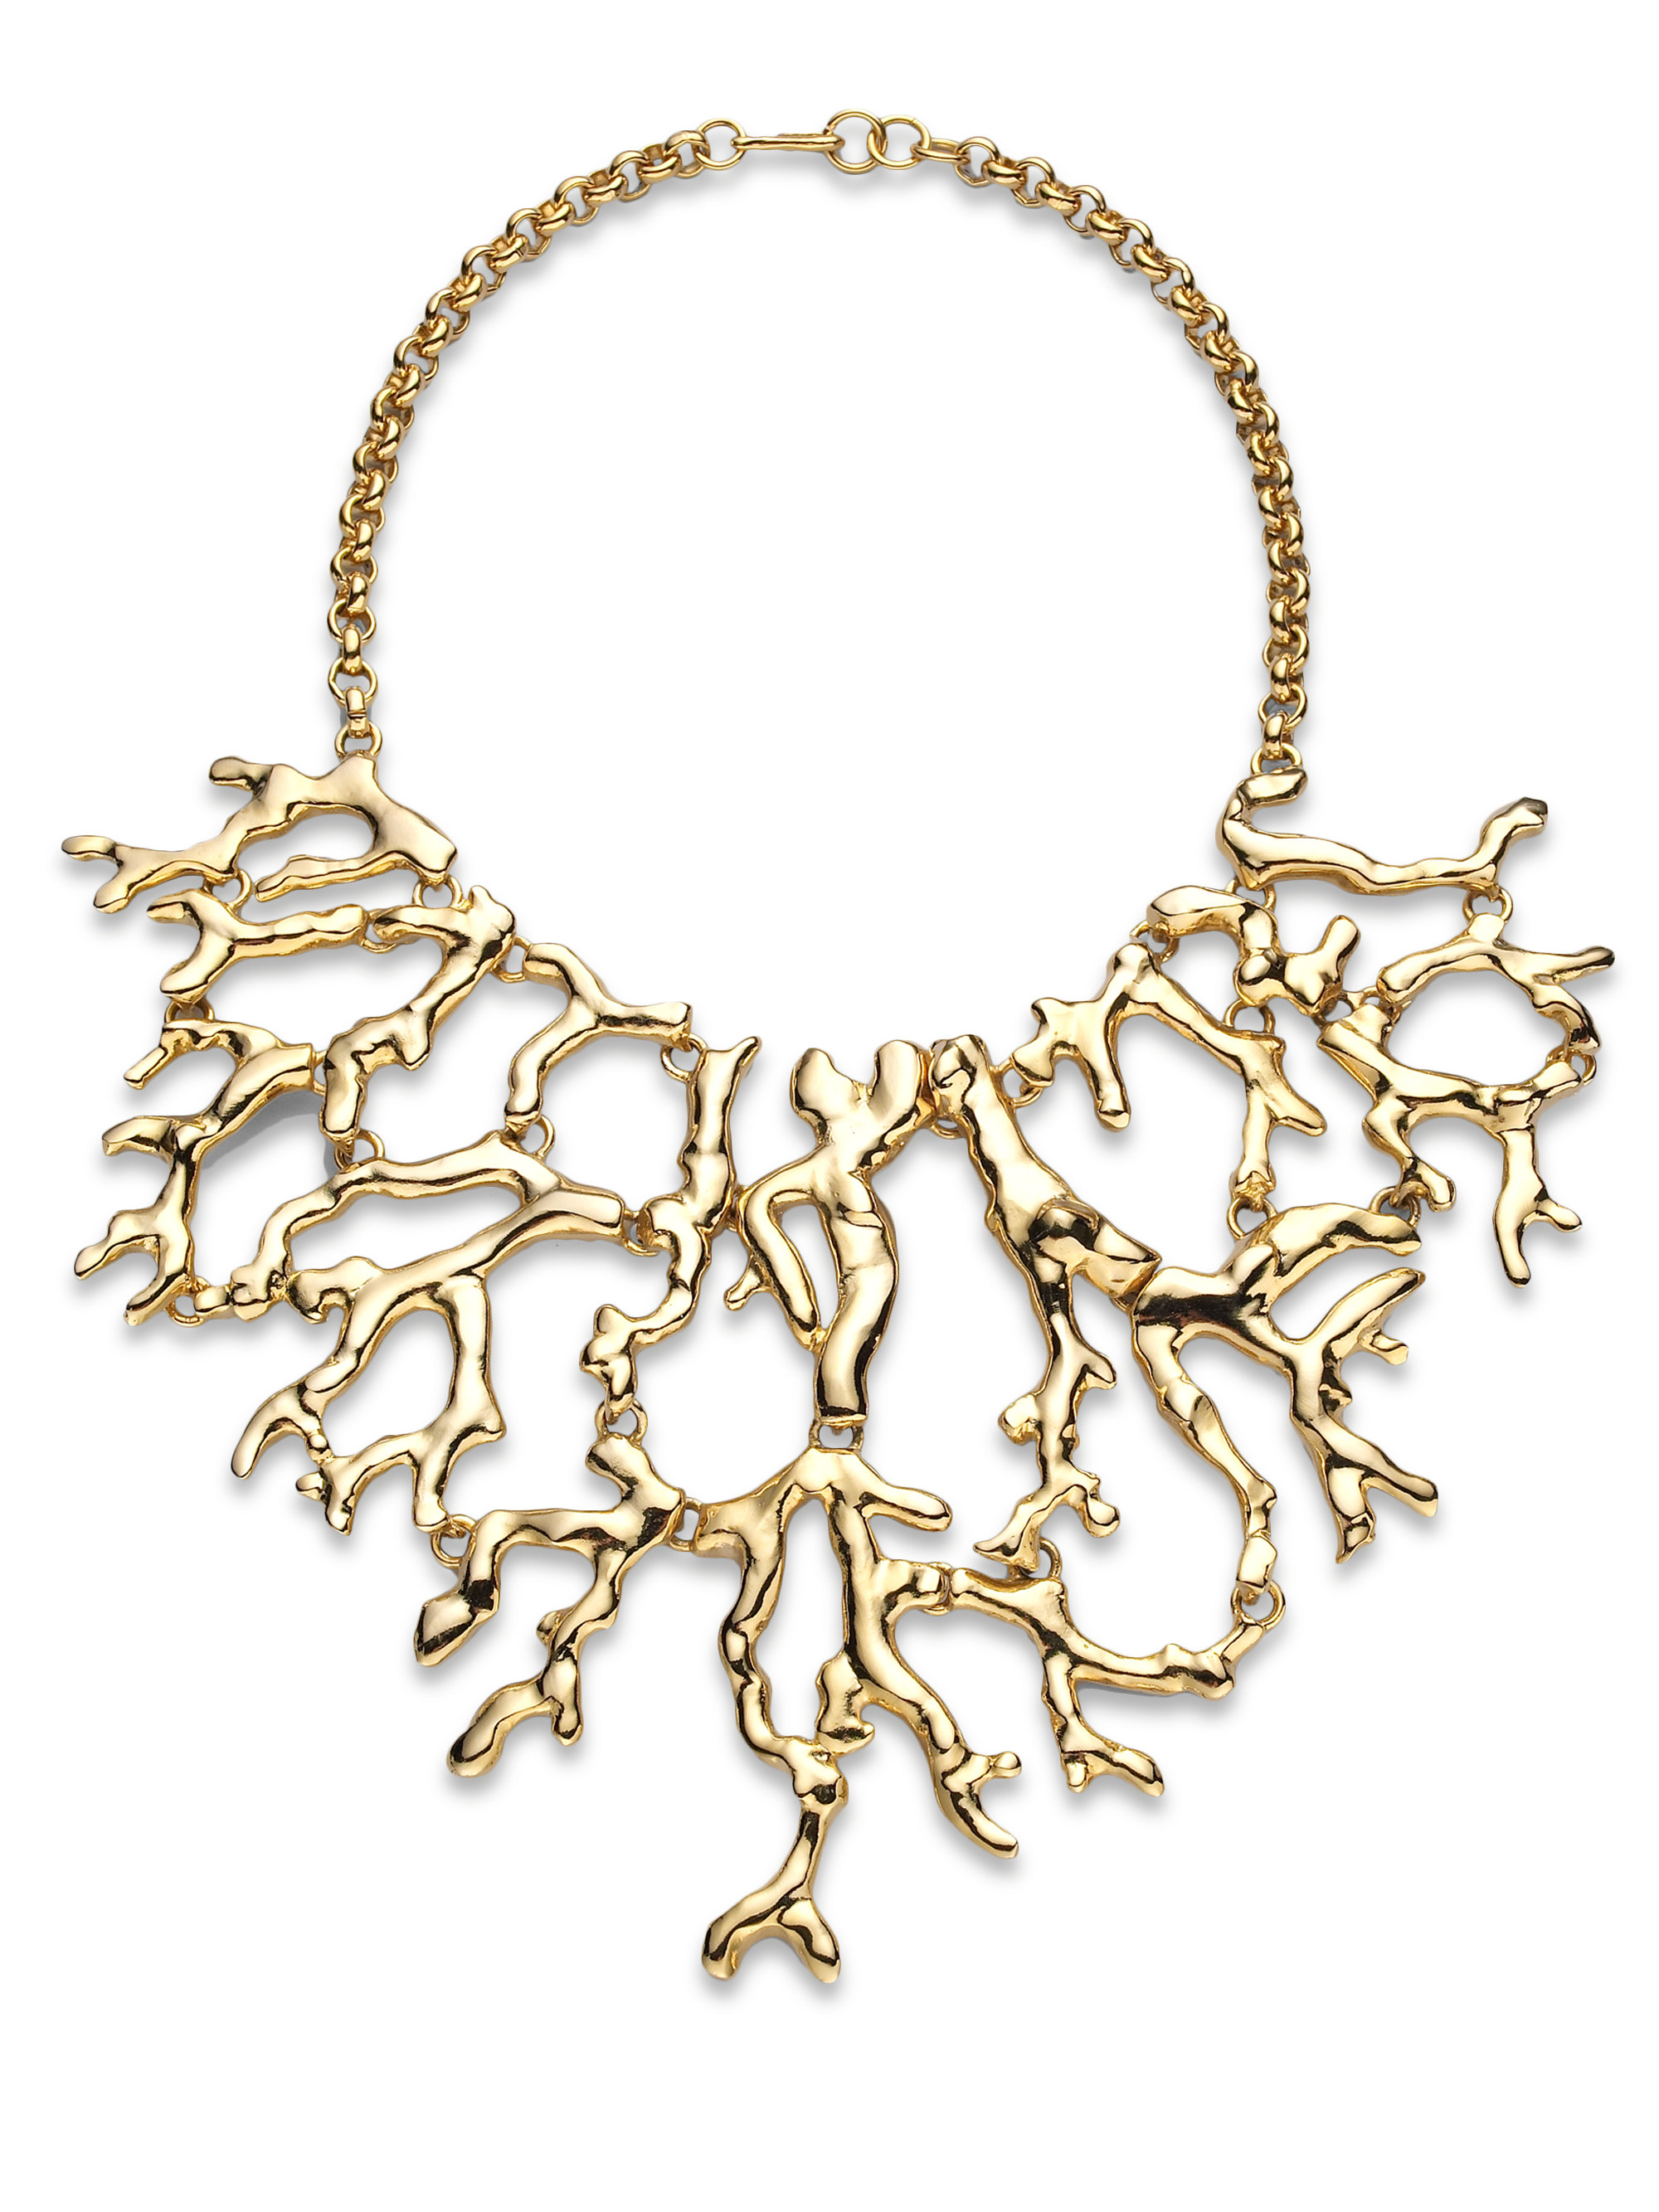 Kenneth Jay Lane Gold And Coral Bib Necklace Pink 34IfQB1